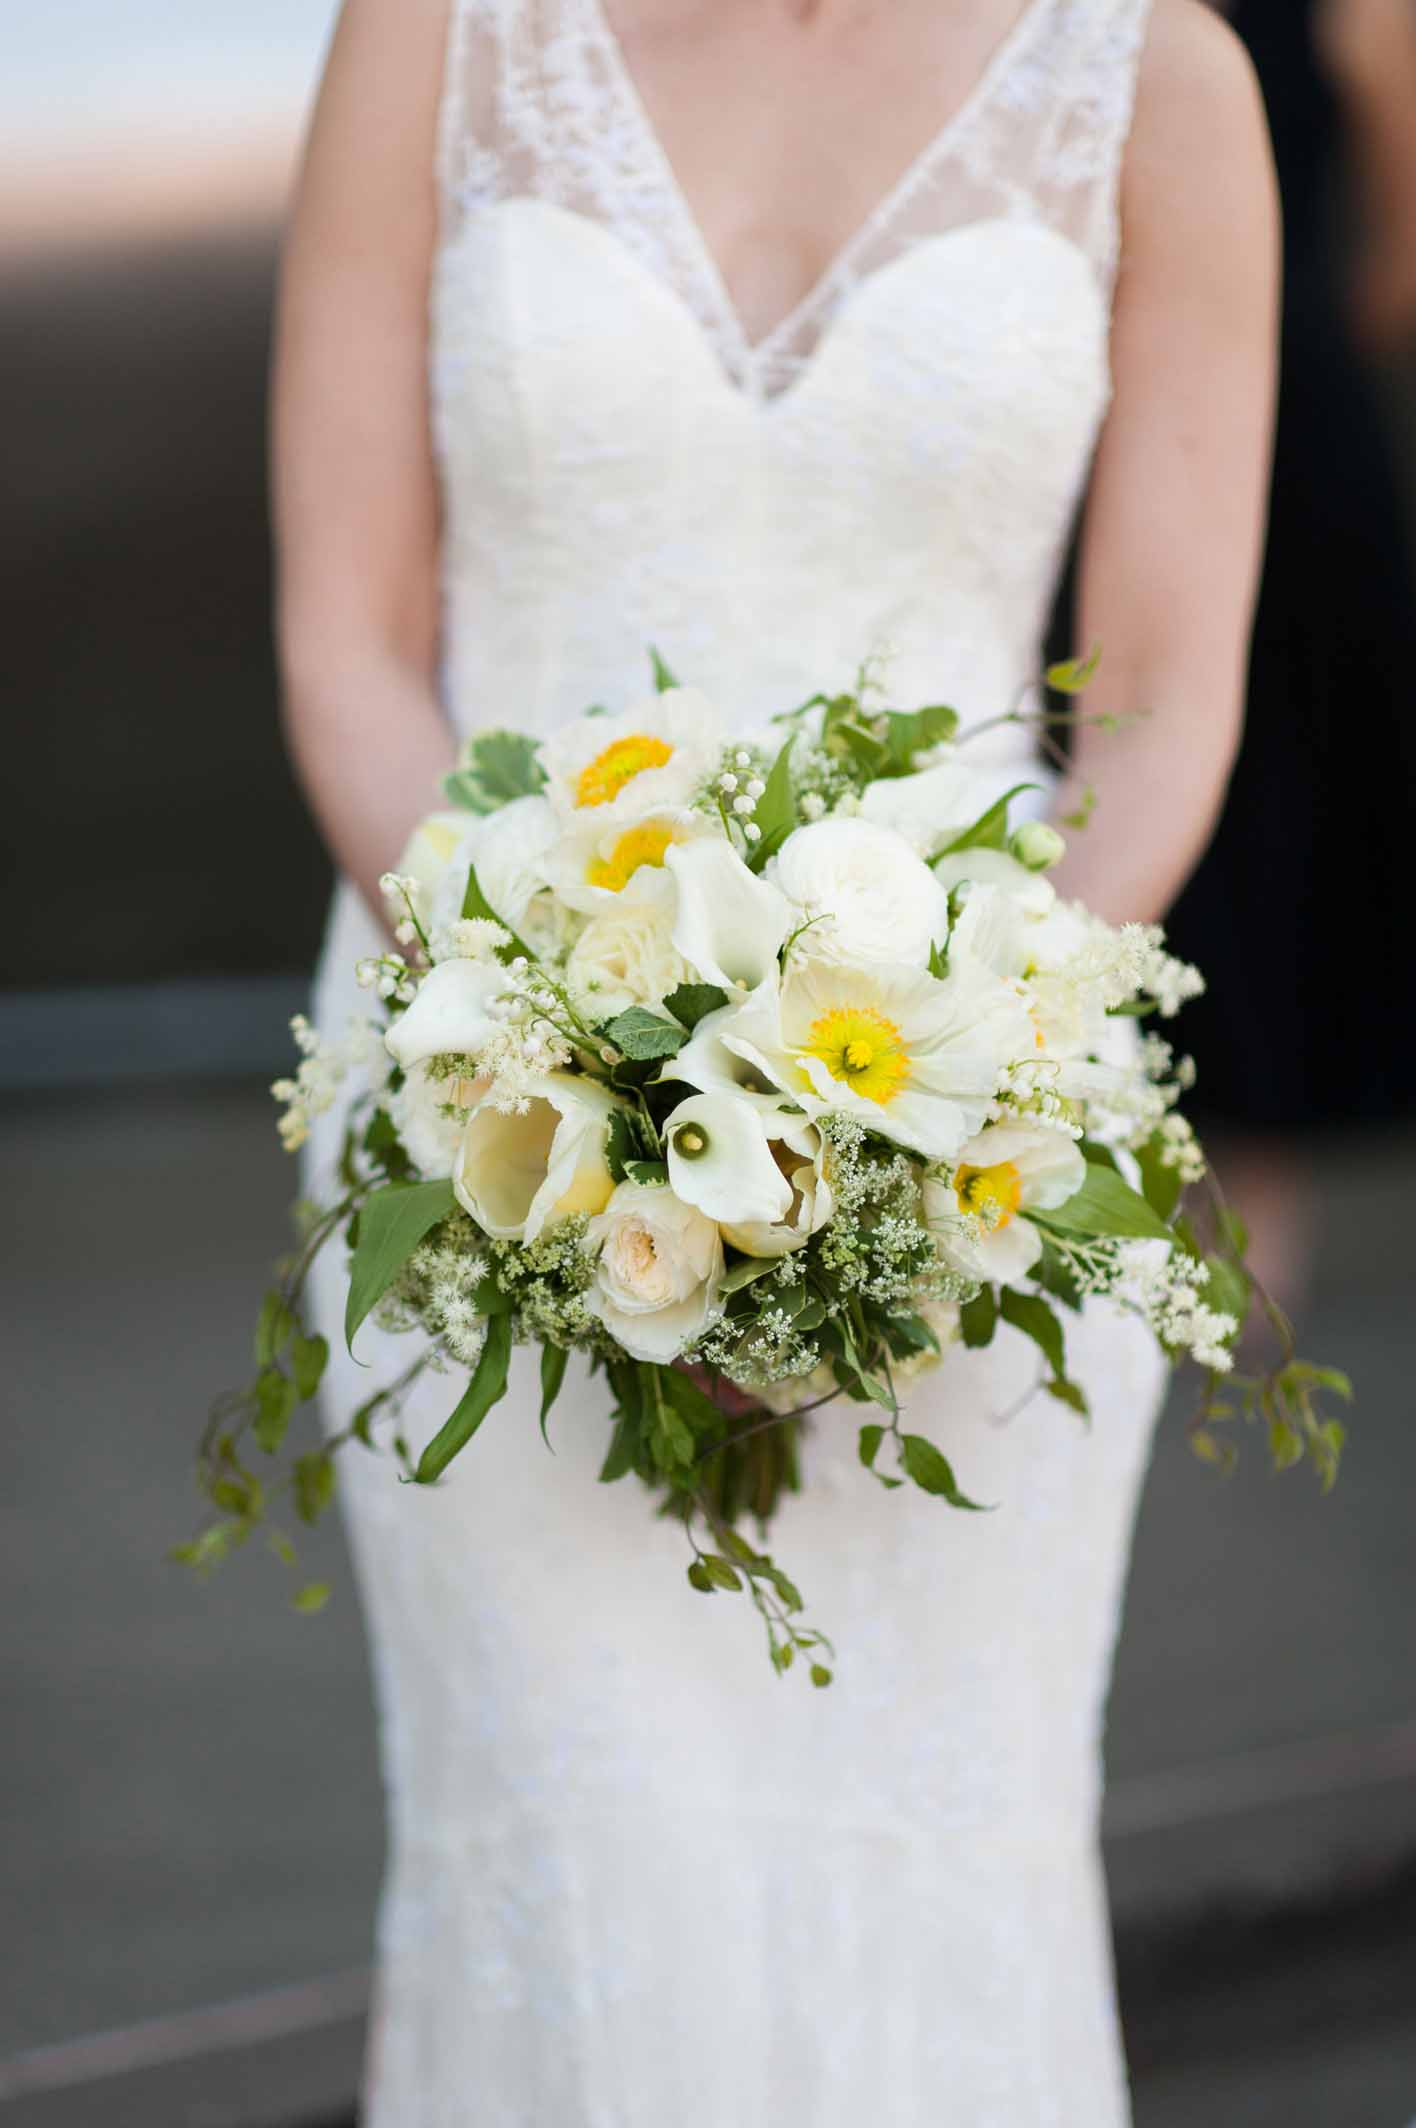 Beautiful white and orange spring bouquet, with poppies, tulips, ranunculus, roses, and crisp spring foliage - Chihuly Garden and Glass Wedding - Flora Nova Design Seattle